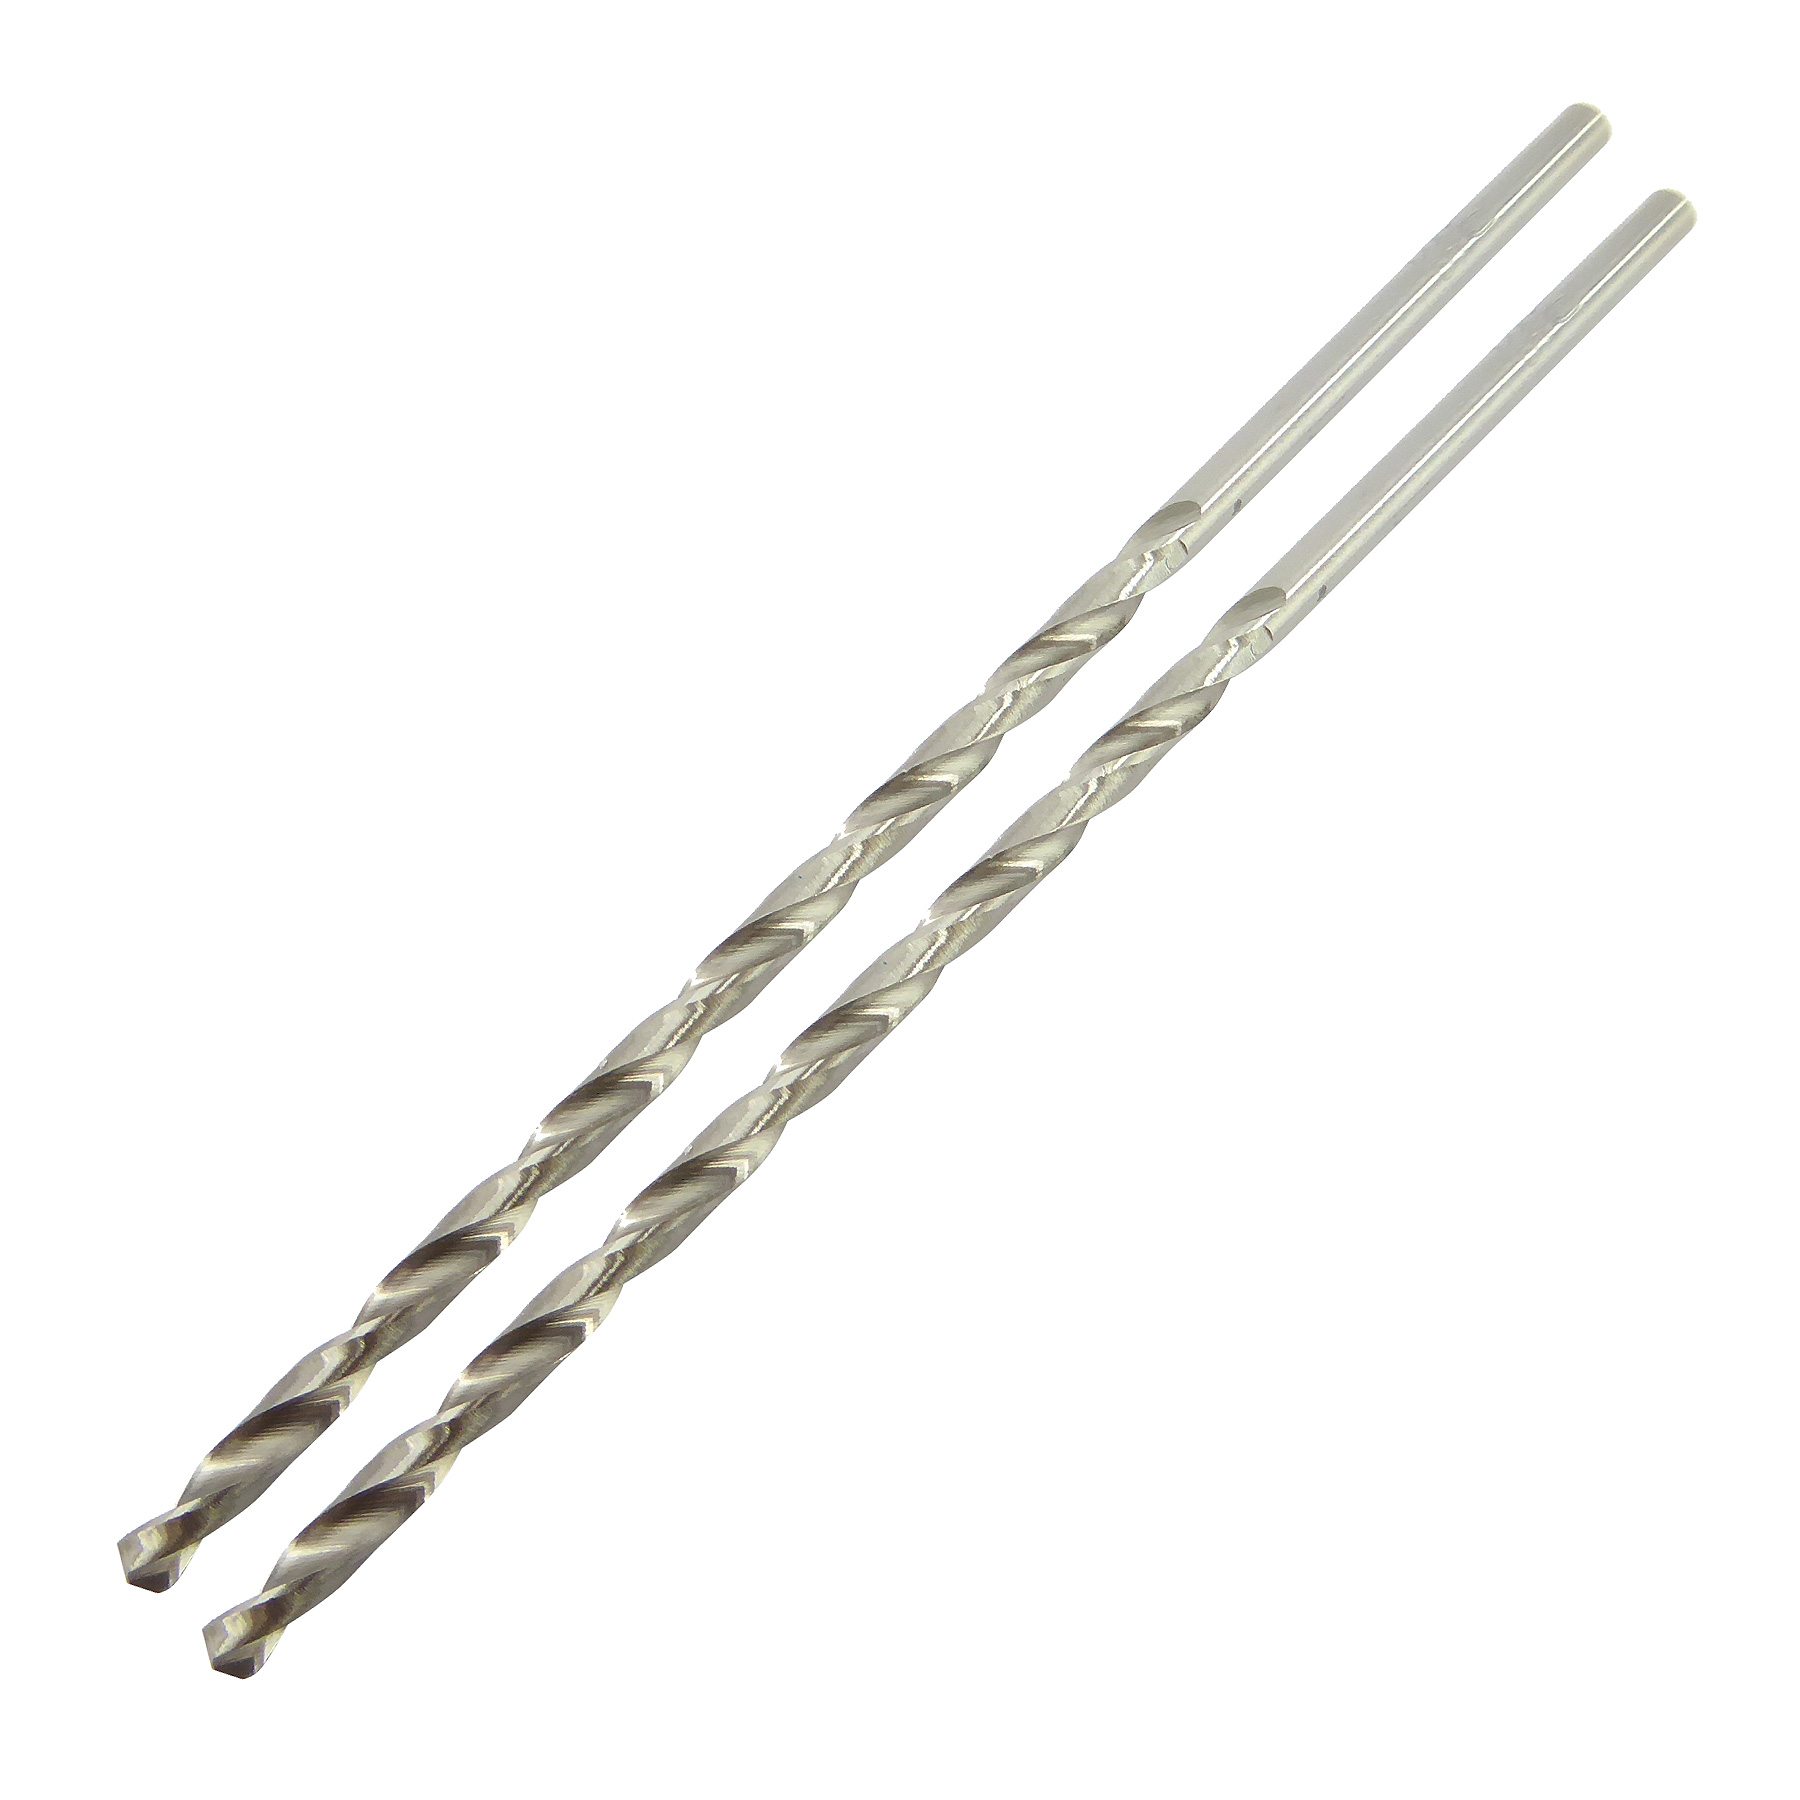 3.0mm x 100mm Long Series Ground Jobber Drill Pack of 2